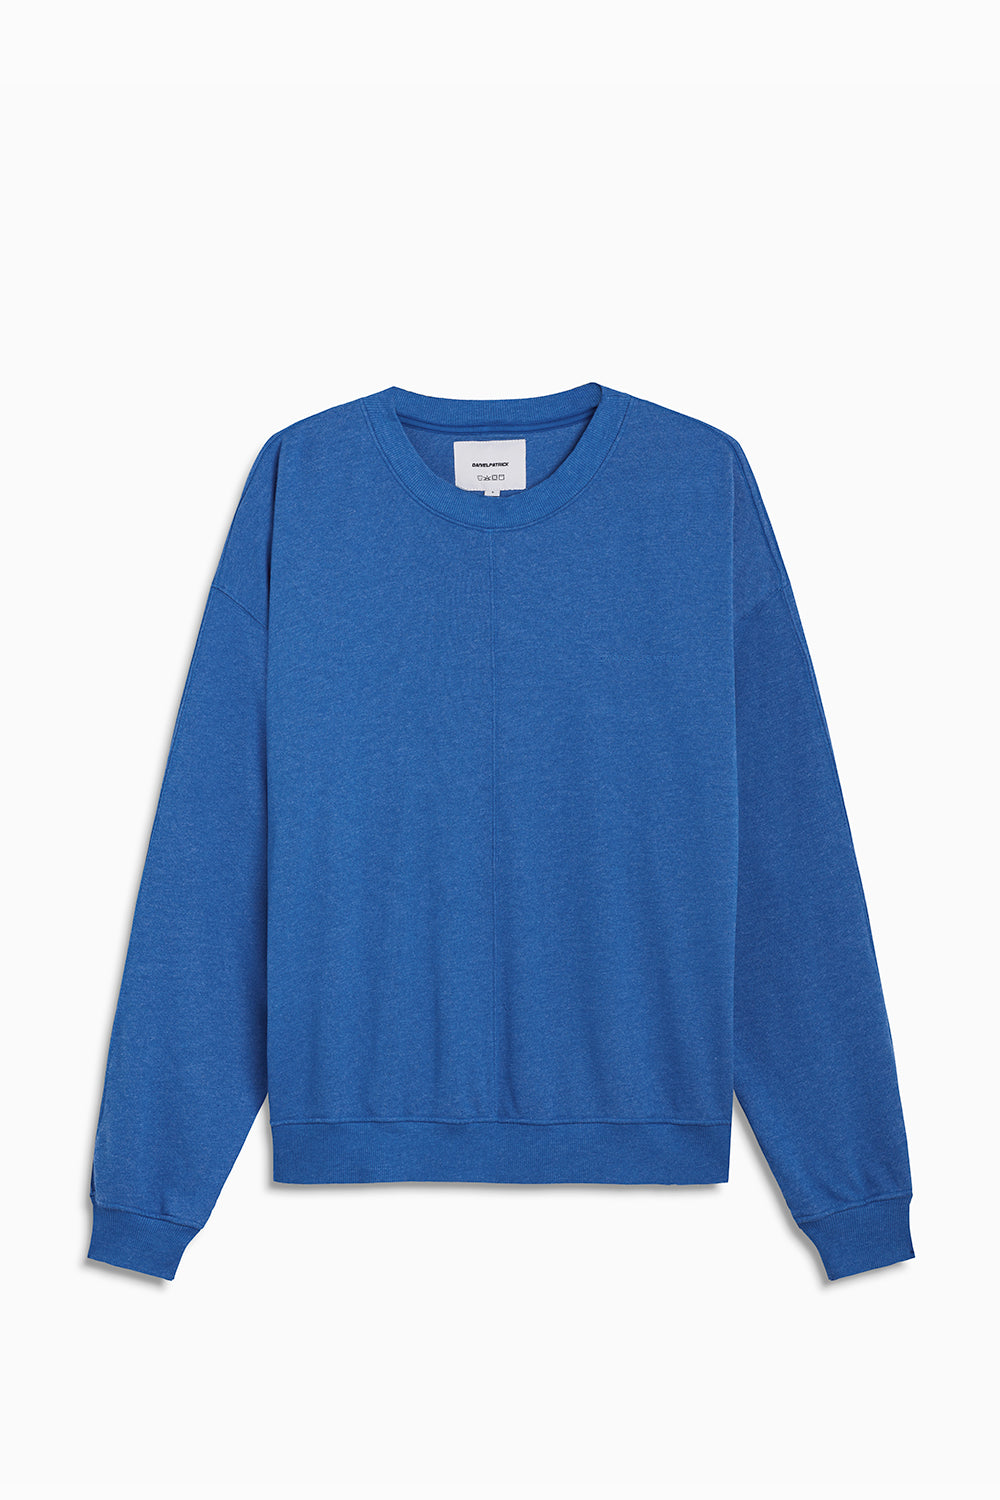 loop terry crewneck sweatshirt / vintage blue heather